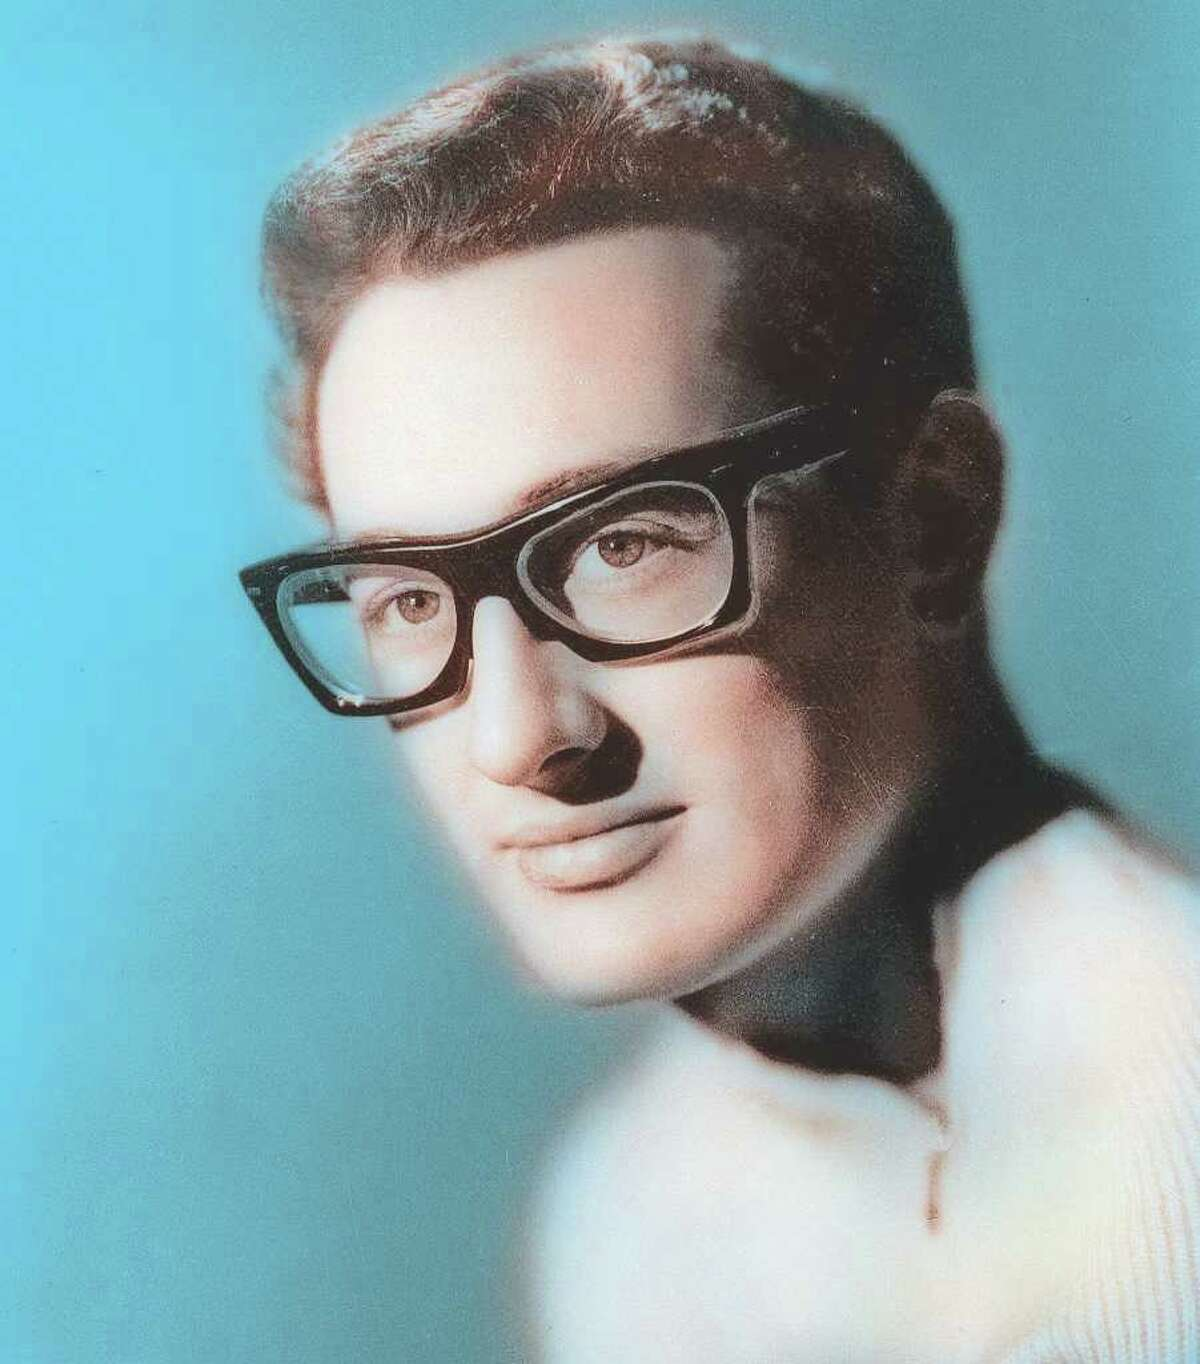 Stardom  Holly was a major rockabilly star and had recently broken away from his band The Crickets. He was 22.